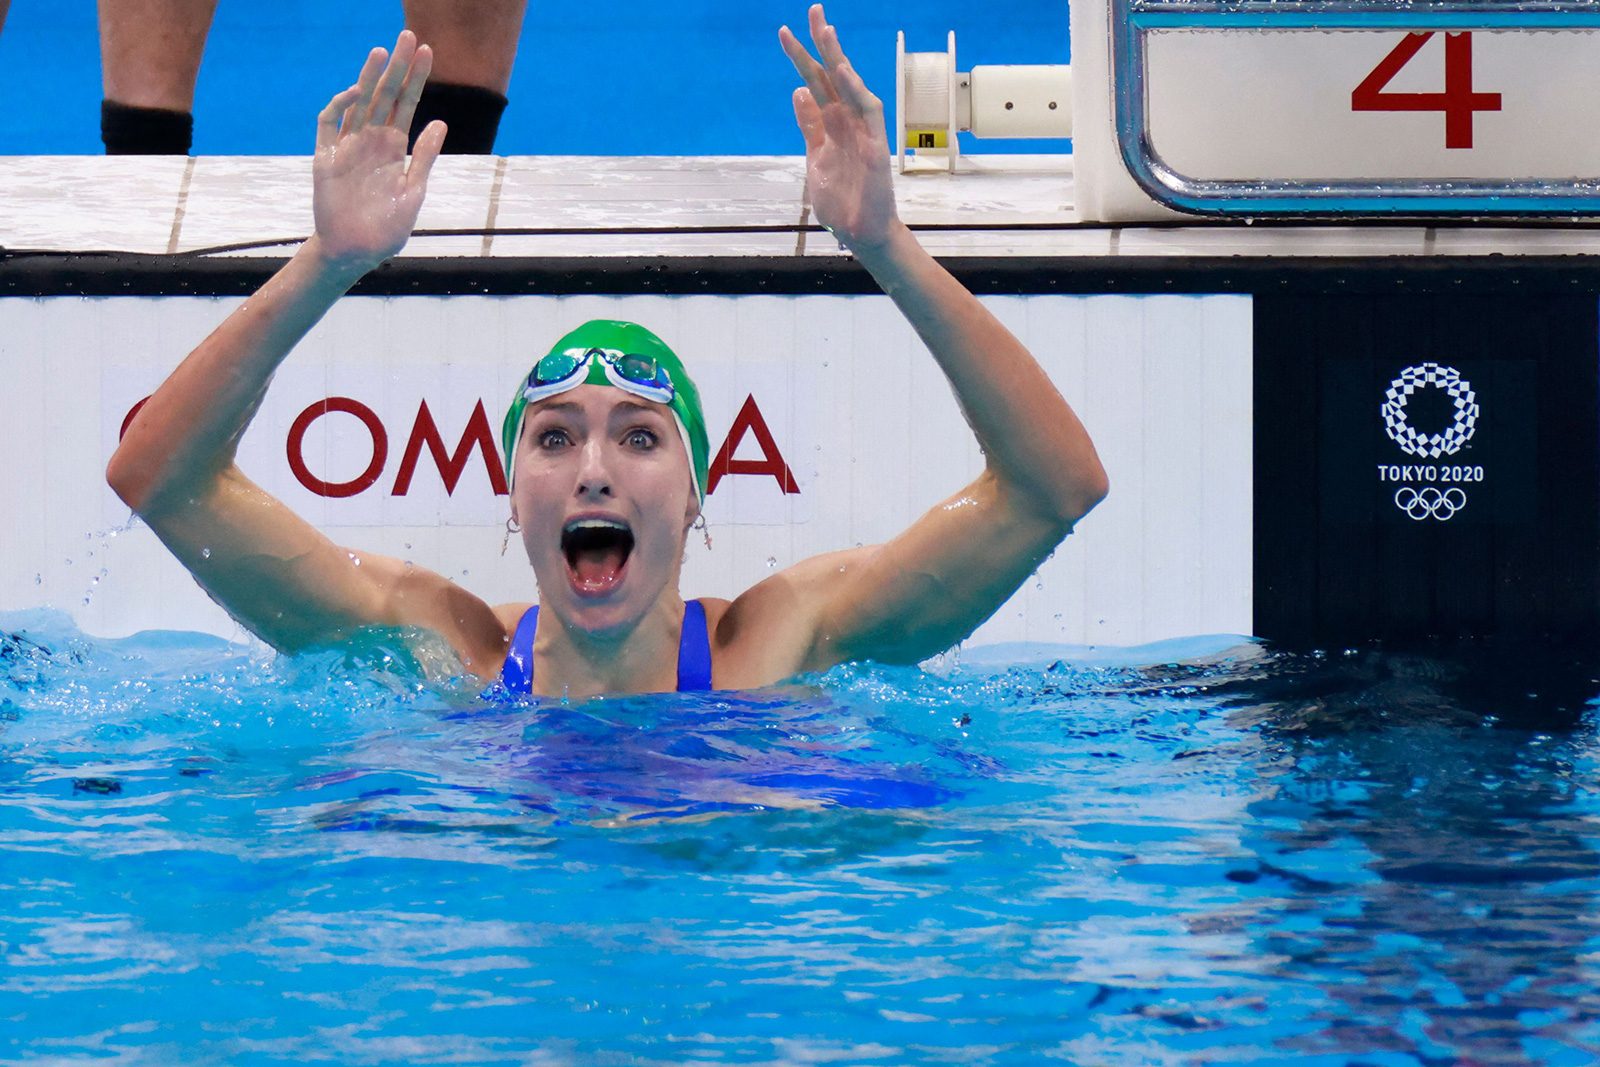 South Africa's Tatjana Schoenmaker reacts after winning the final of the 200-meter breaststroke event to set a new world record on Friday in Japan.